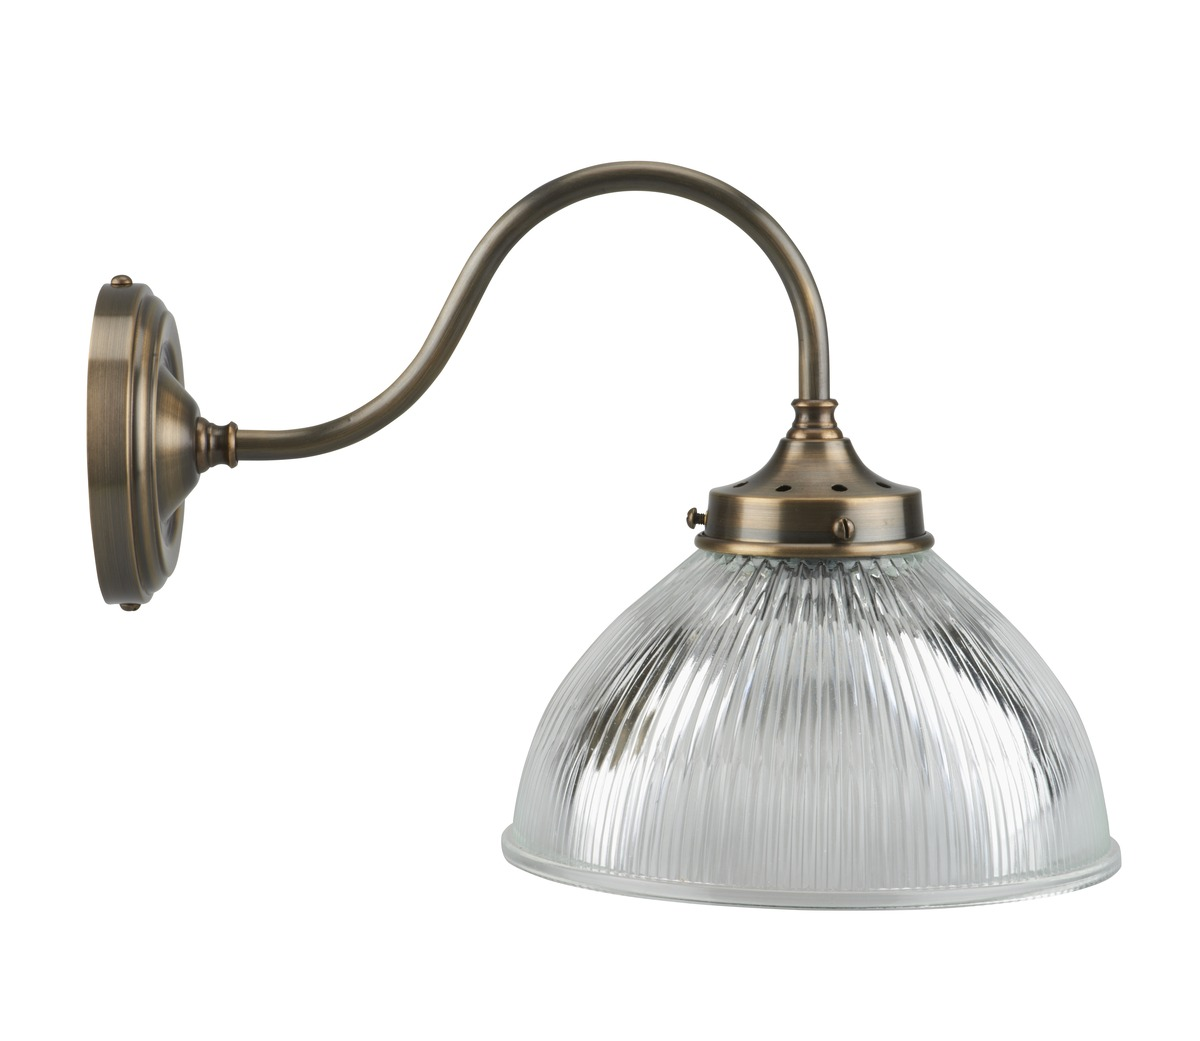 French Wall Lights: Gare Montparnasse Wall Light,Lighting